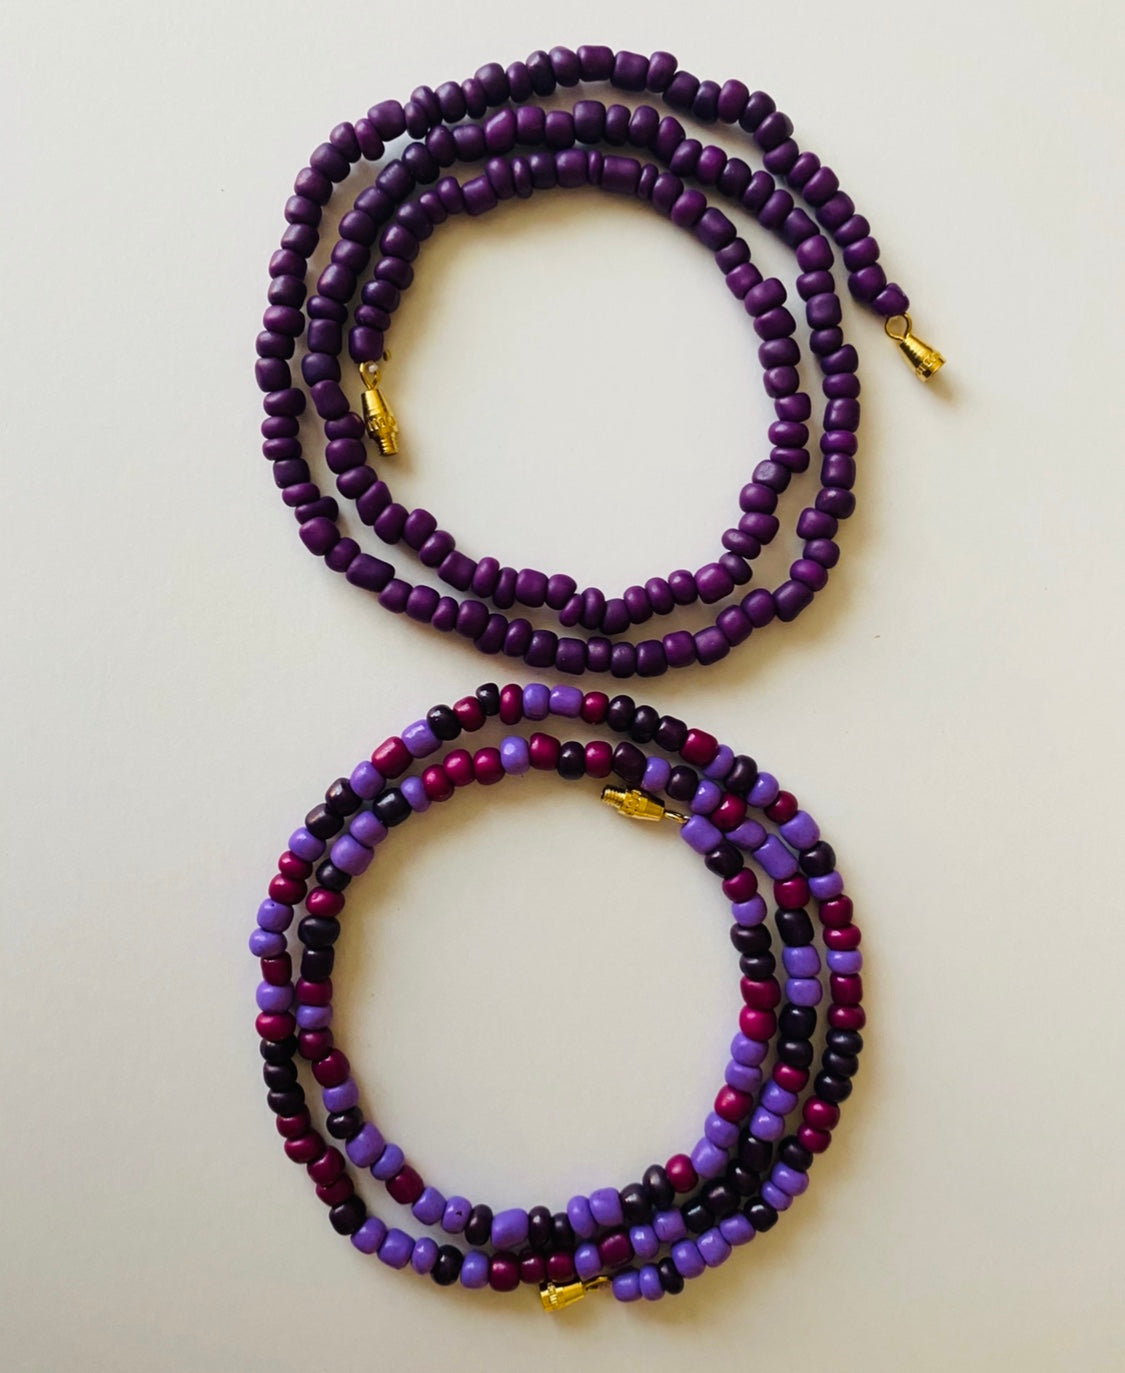 Crown Purple Goddess Waist Beads 2pcs Set